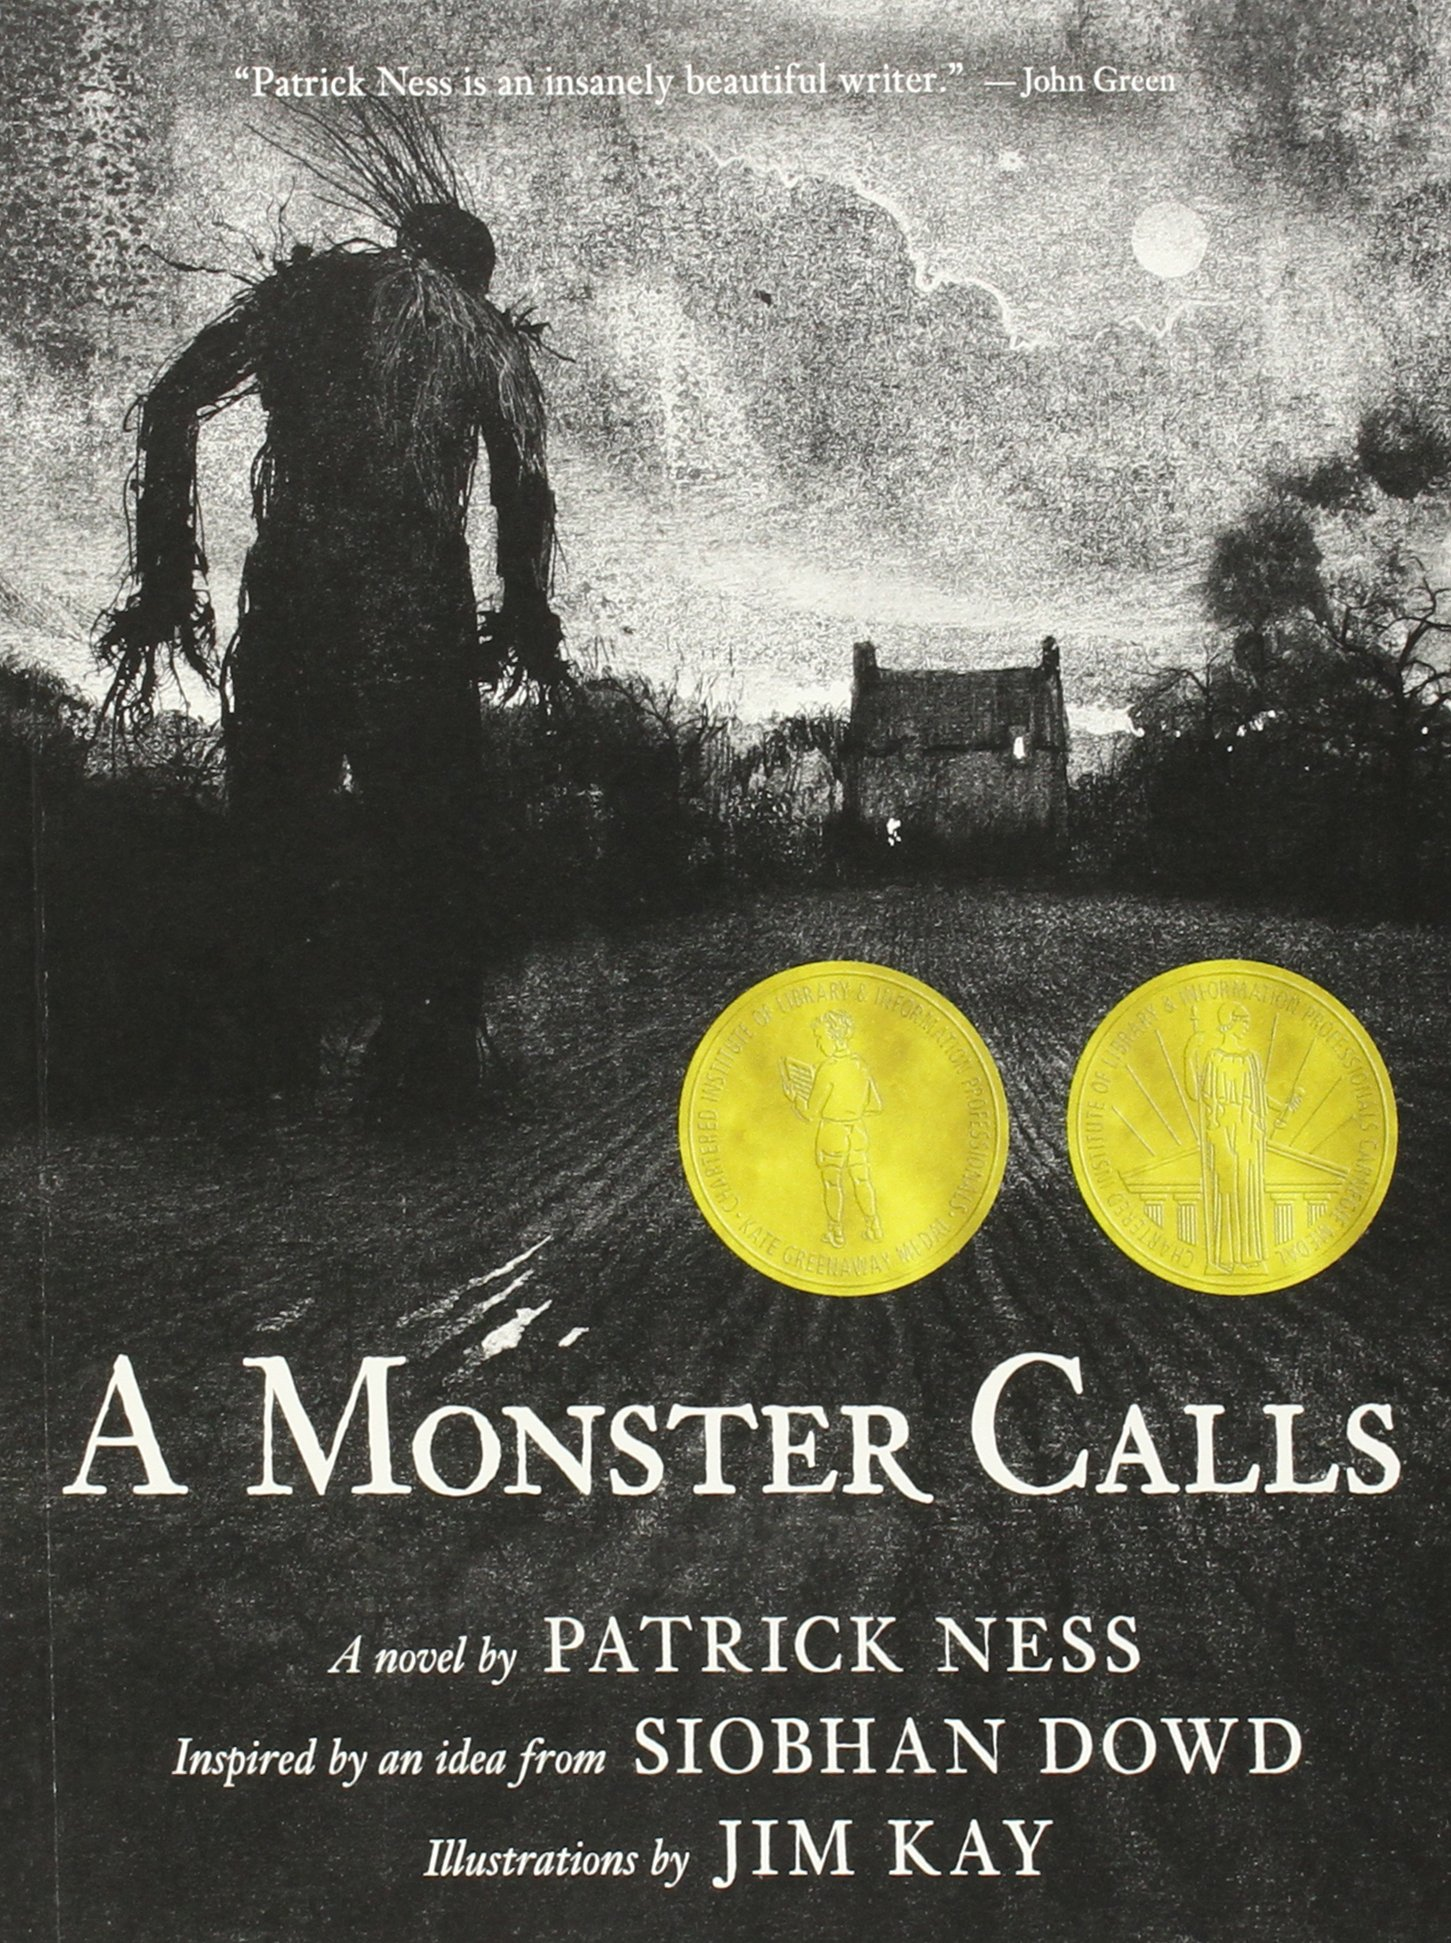 A boy seeks the help of a tree monster to cope with his single mother's terminal illness.